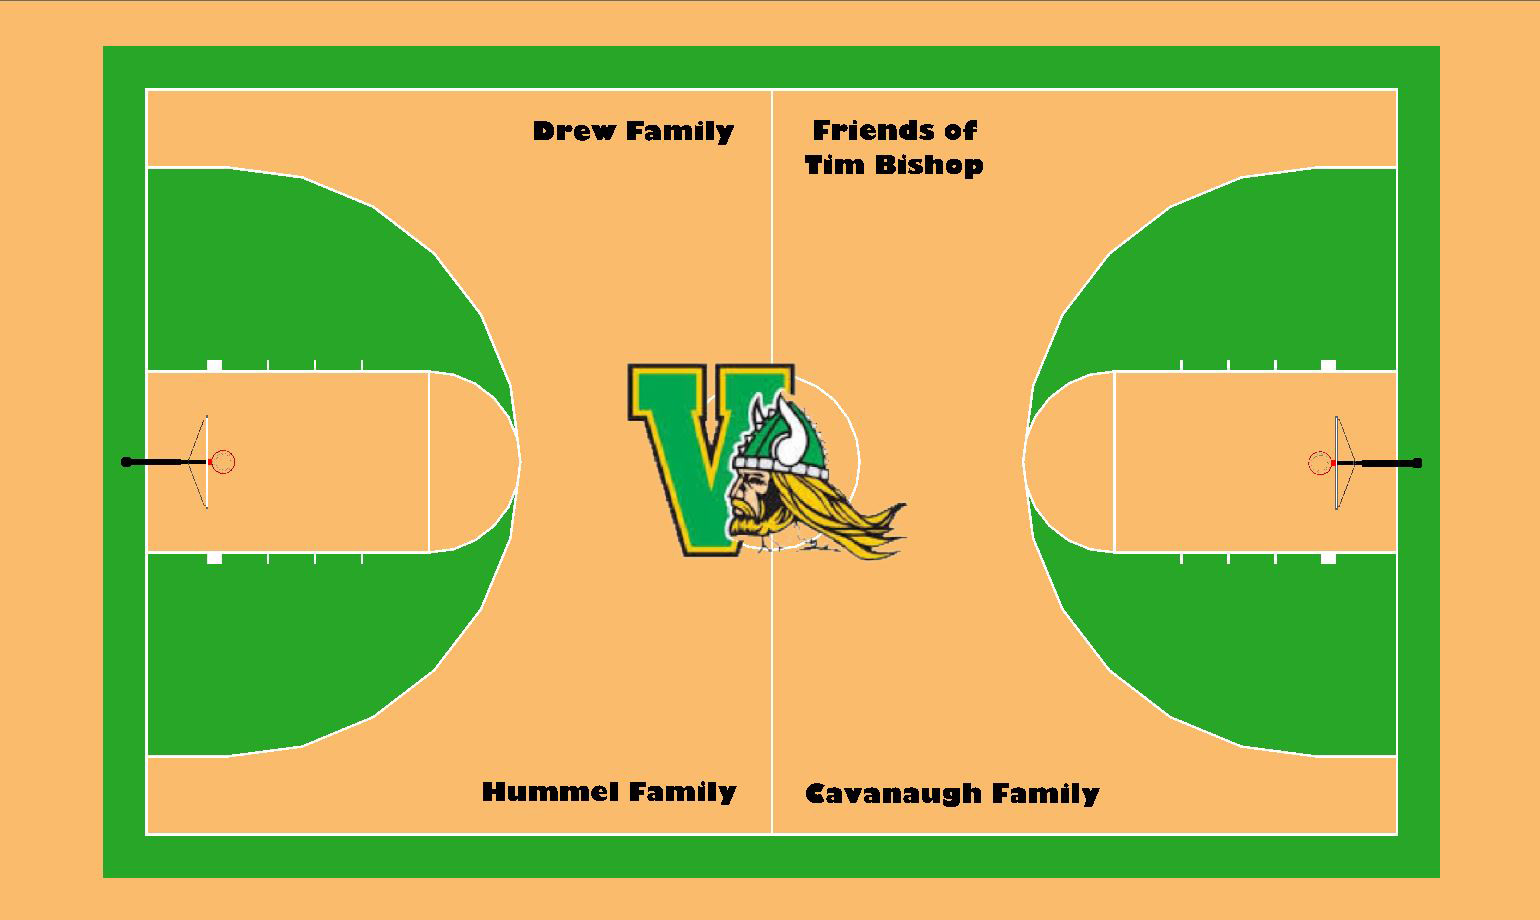 Drew, Bishop, Hummel, and Cavanaugh Families Gift New VHS-Themed Court to Valpo Parks